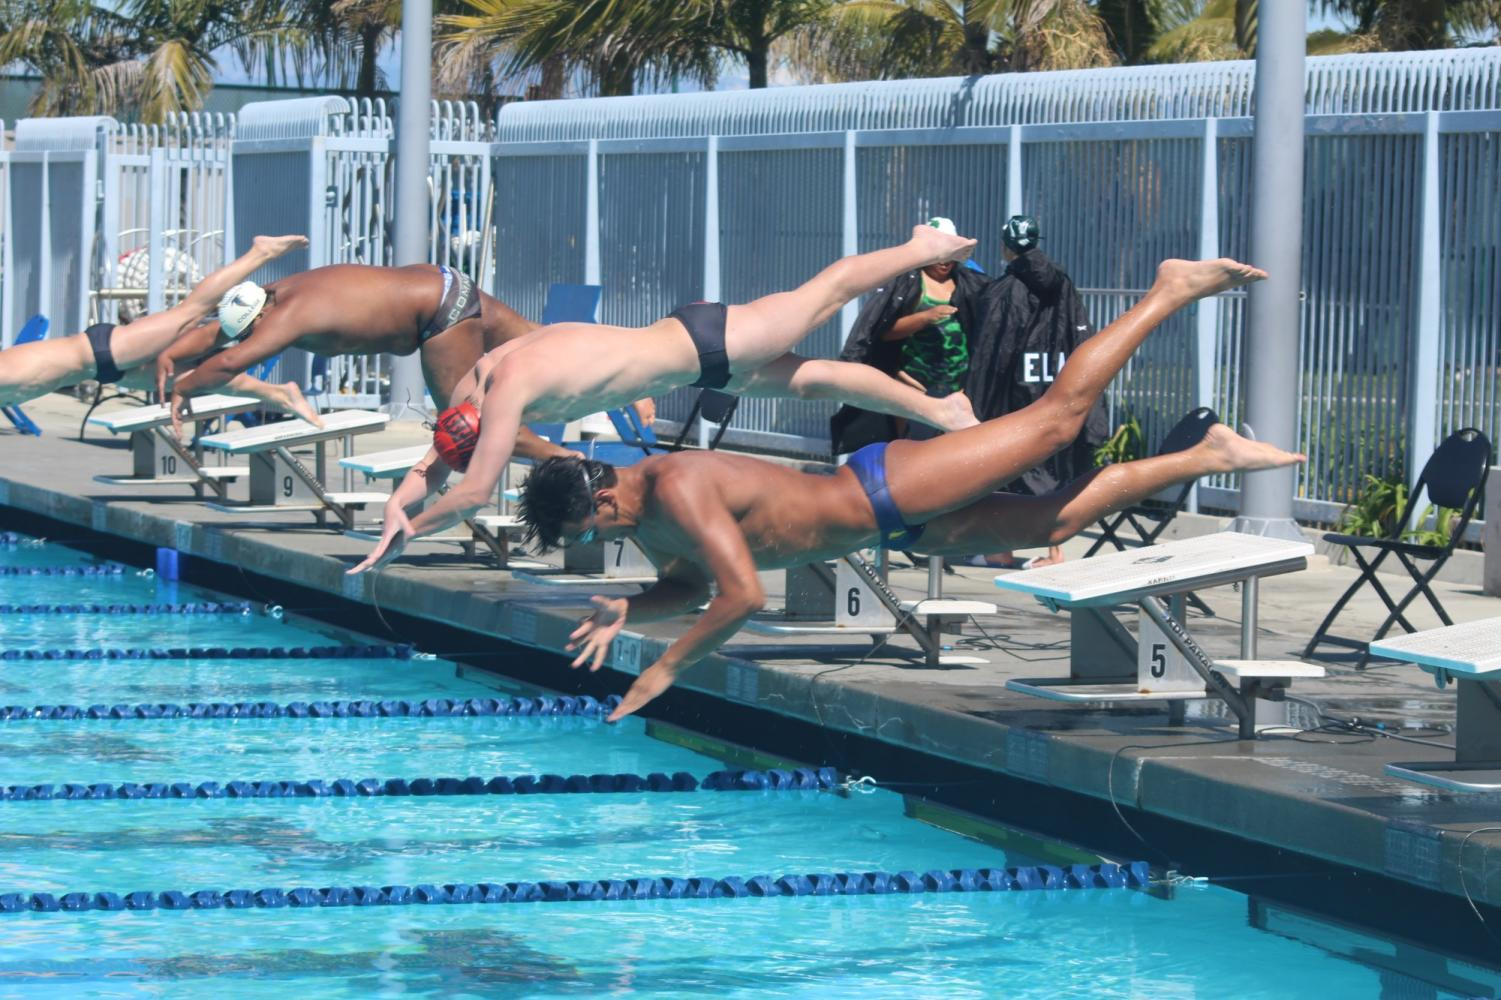 Men falcons stretch off the block at the start of the 200 Butterfly. The Falcons will later finish in the top 3. Photo credit: Christopher Martinez